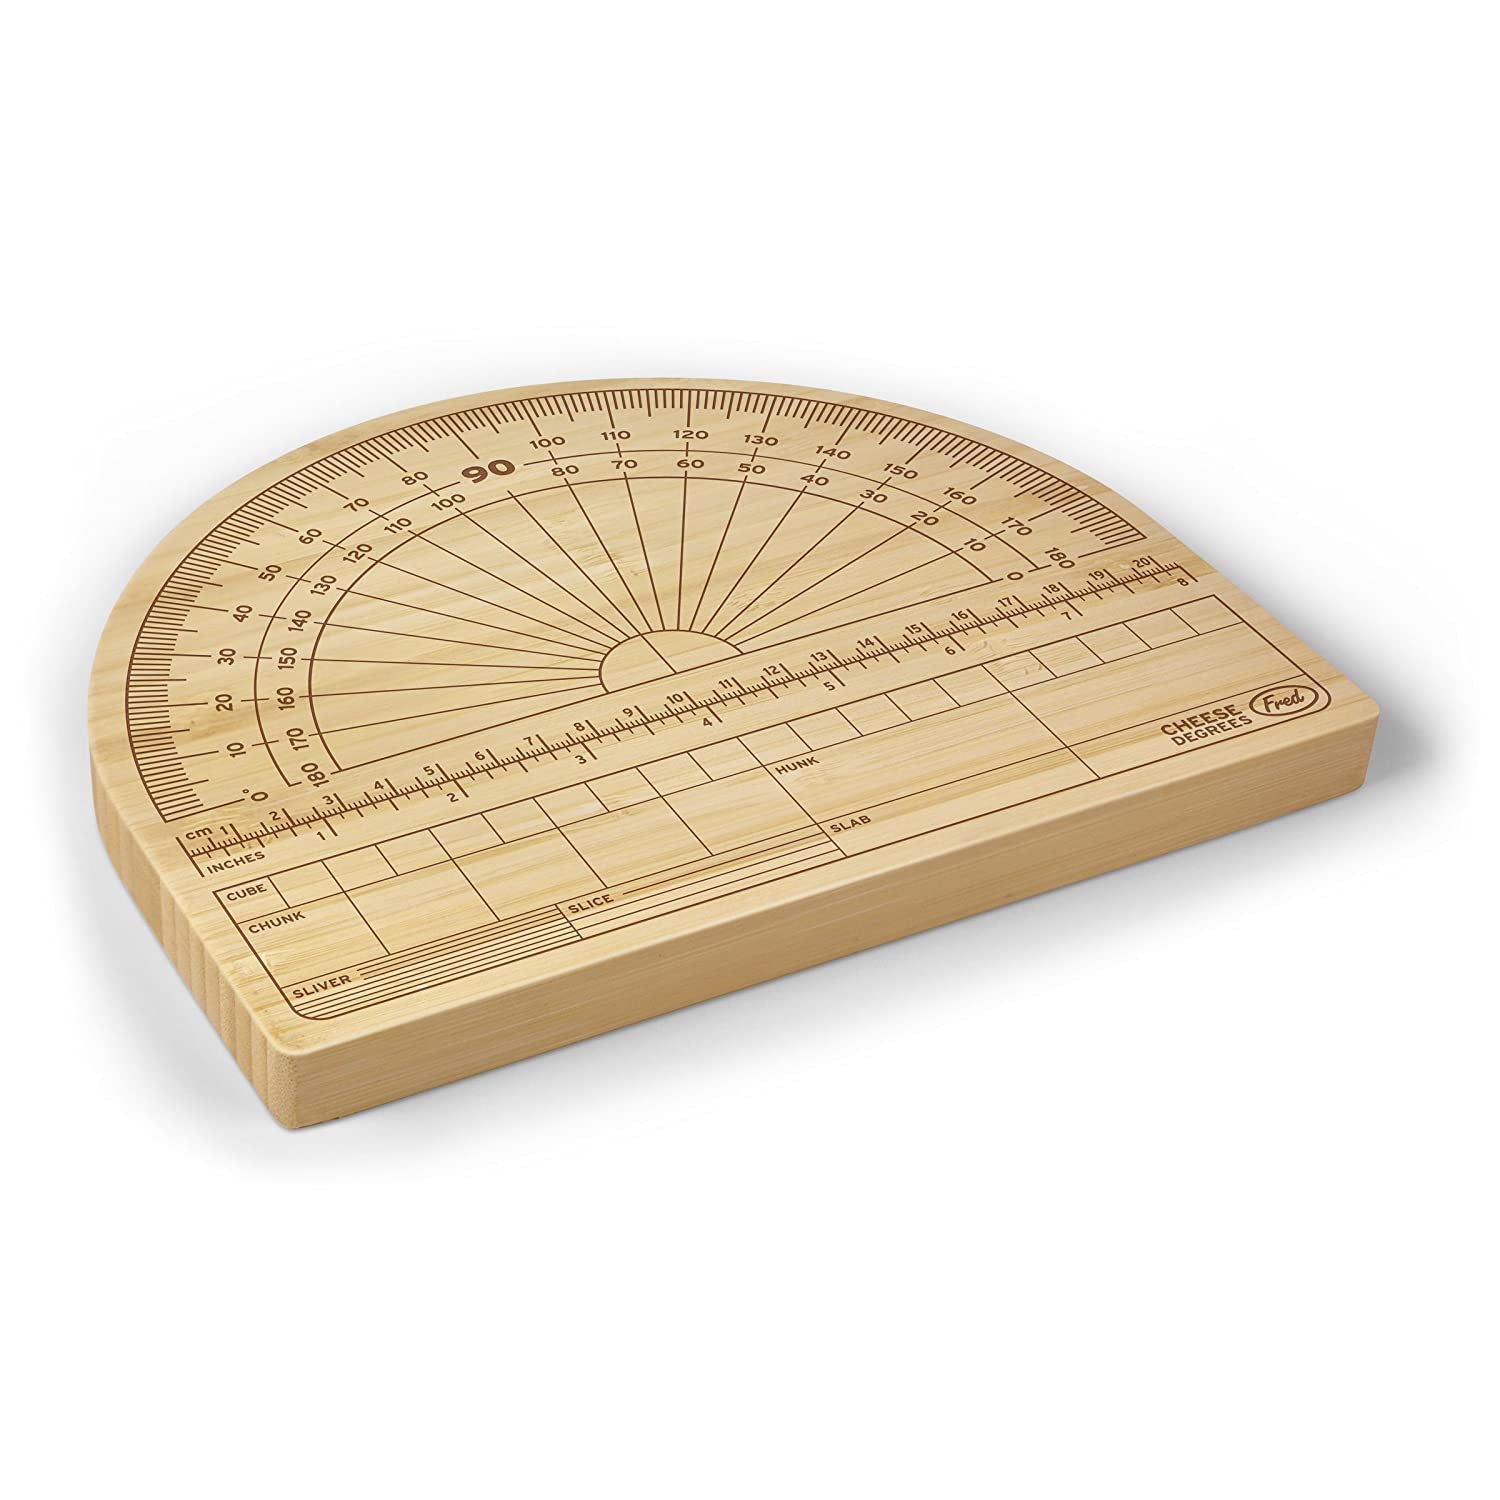 Fred CHEESE DEGREES Precision Cheese Cutting Board KitchenCraft 5186692